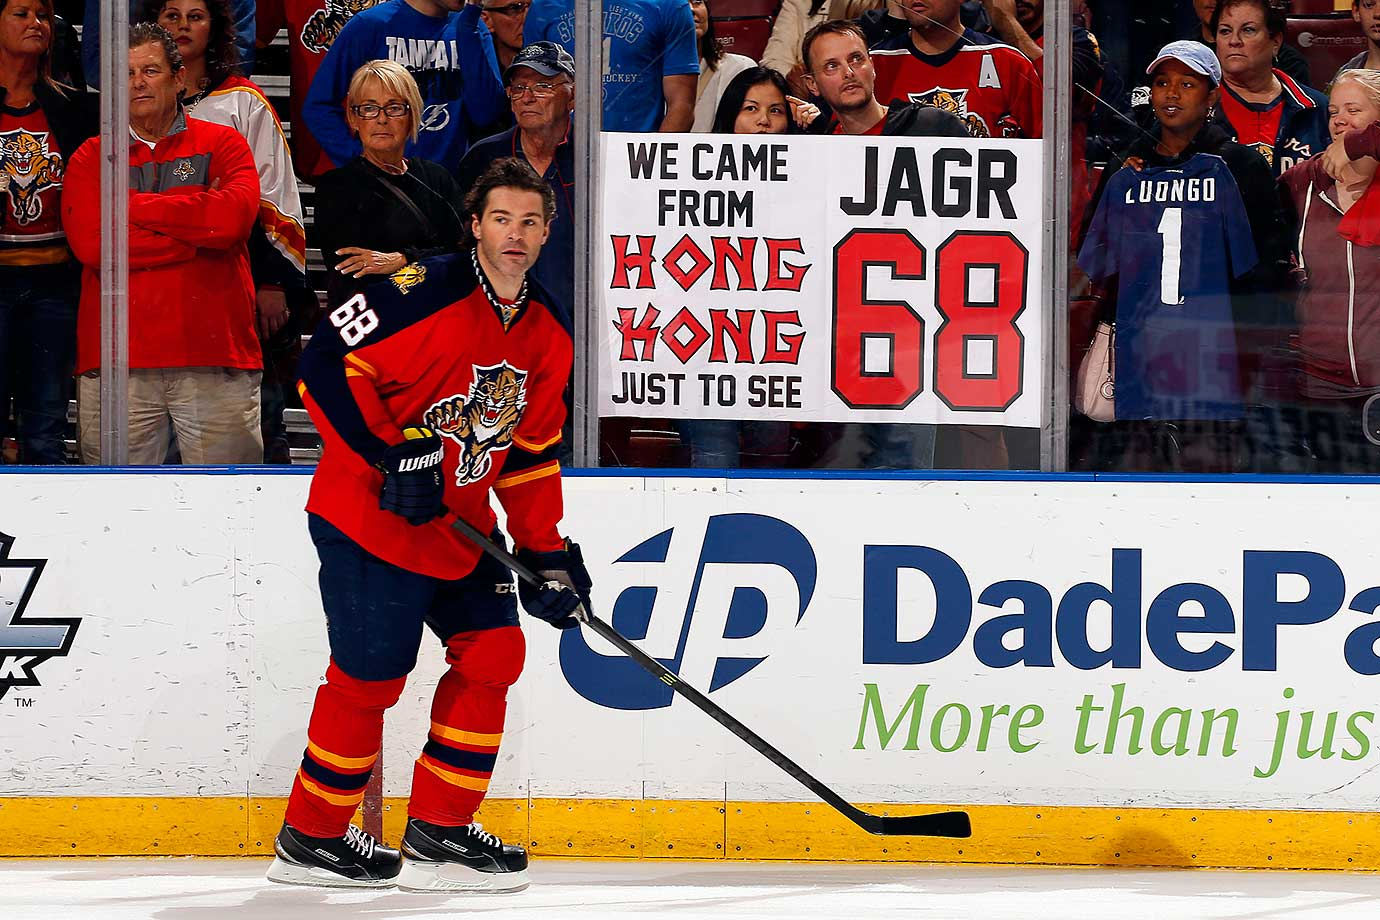 Jaromir Jagr of the Florida Panthers skates by fans that traveled all the way from Hong Kong to see him play against the Tampa Bay Lightning at the BB&T Center.